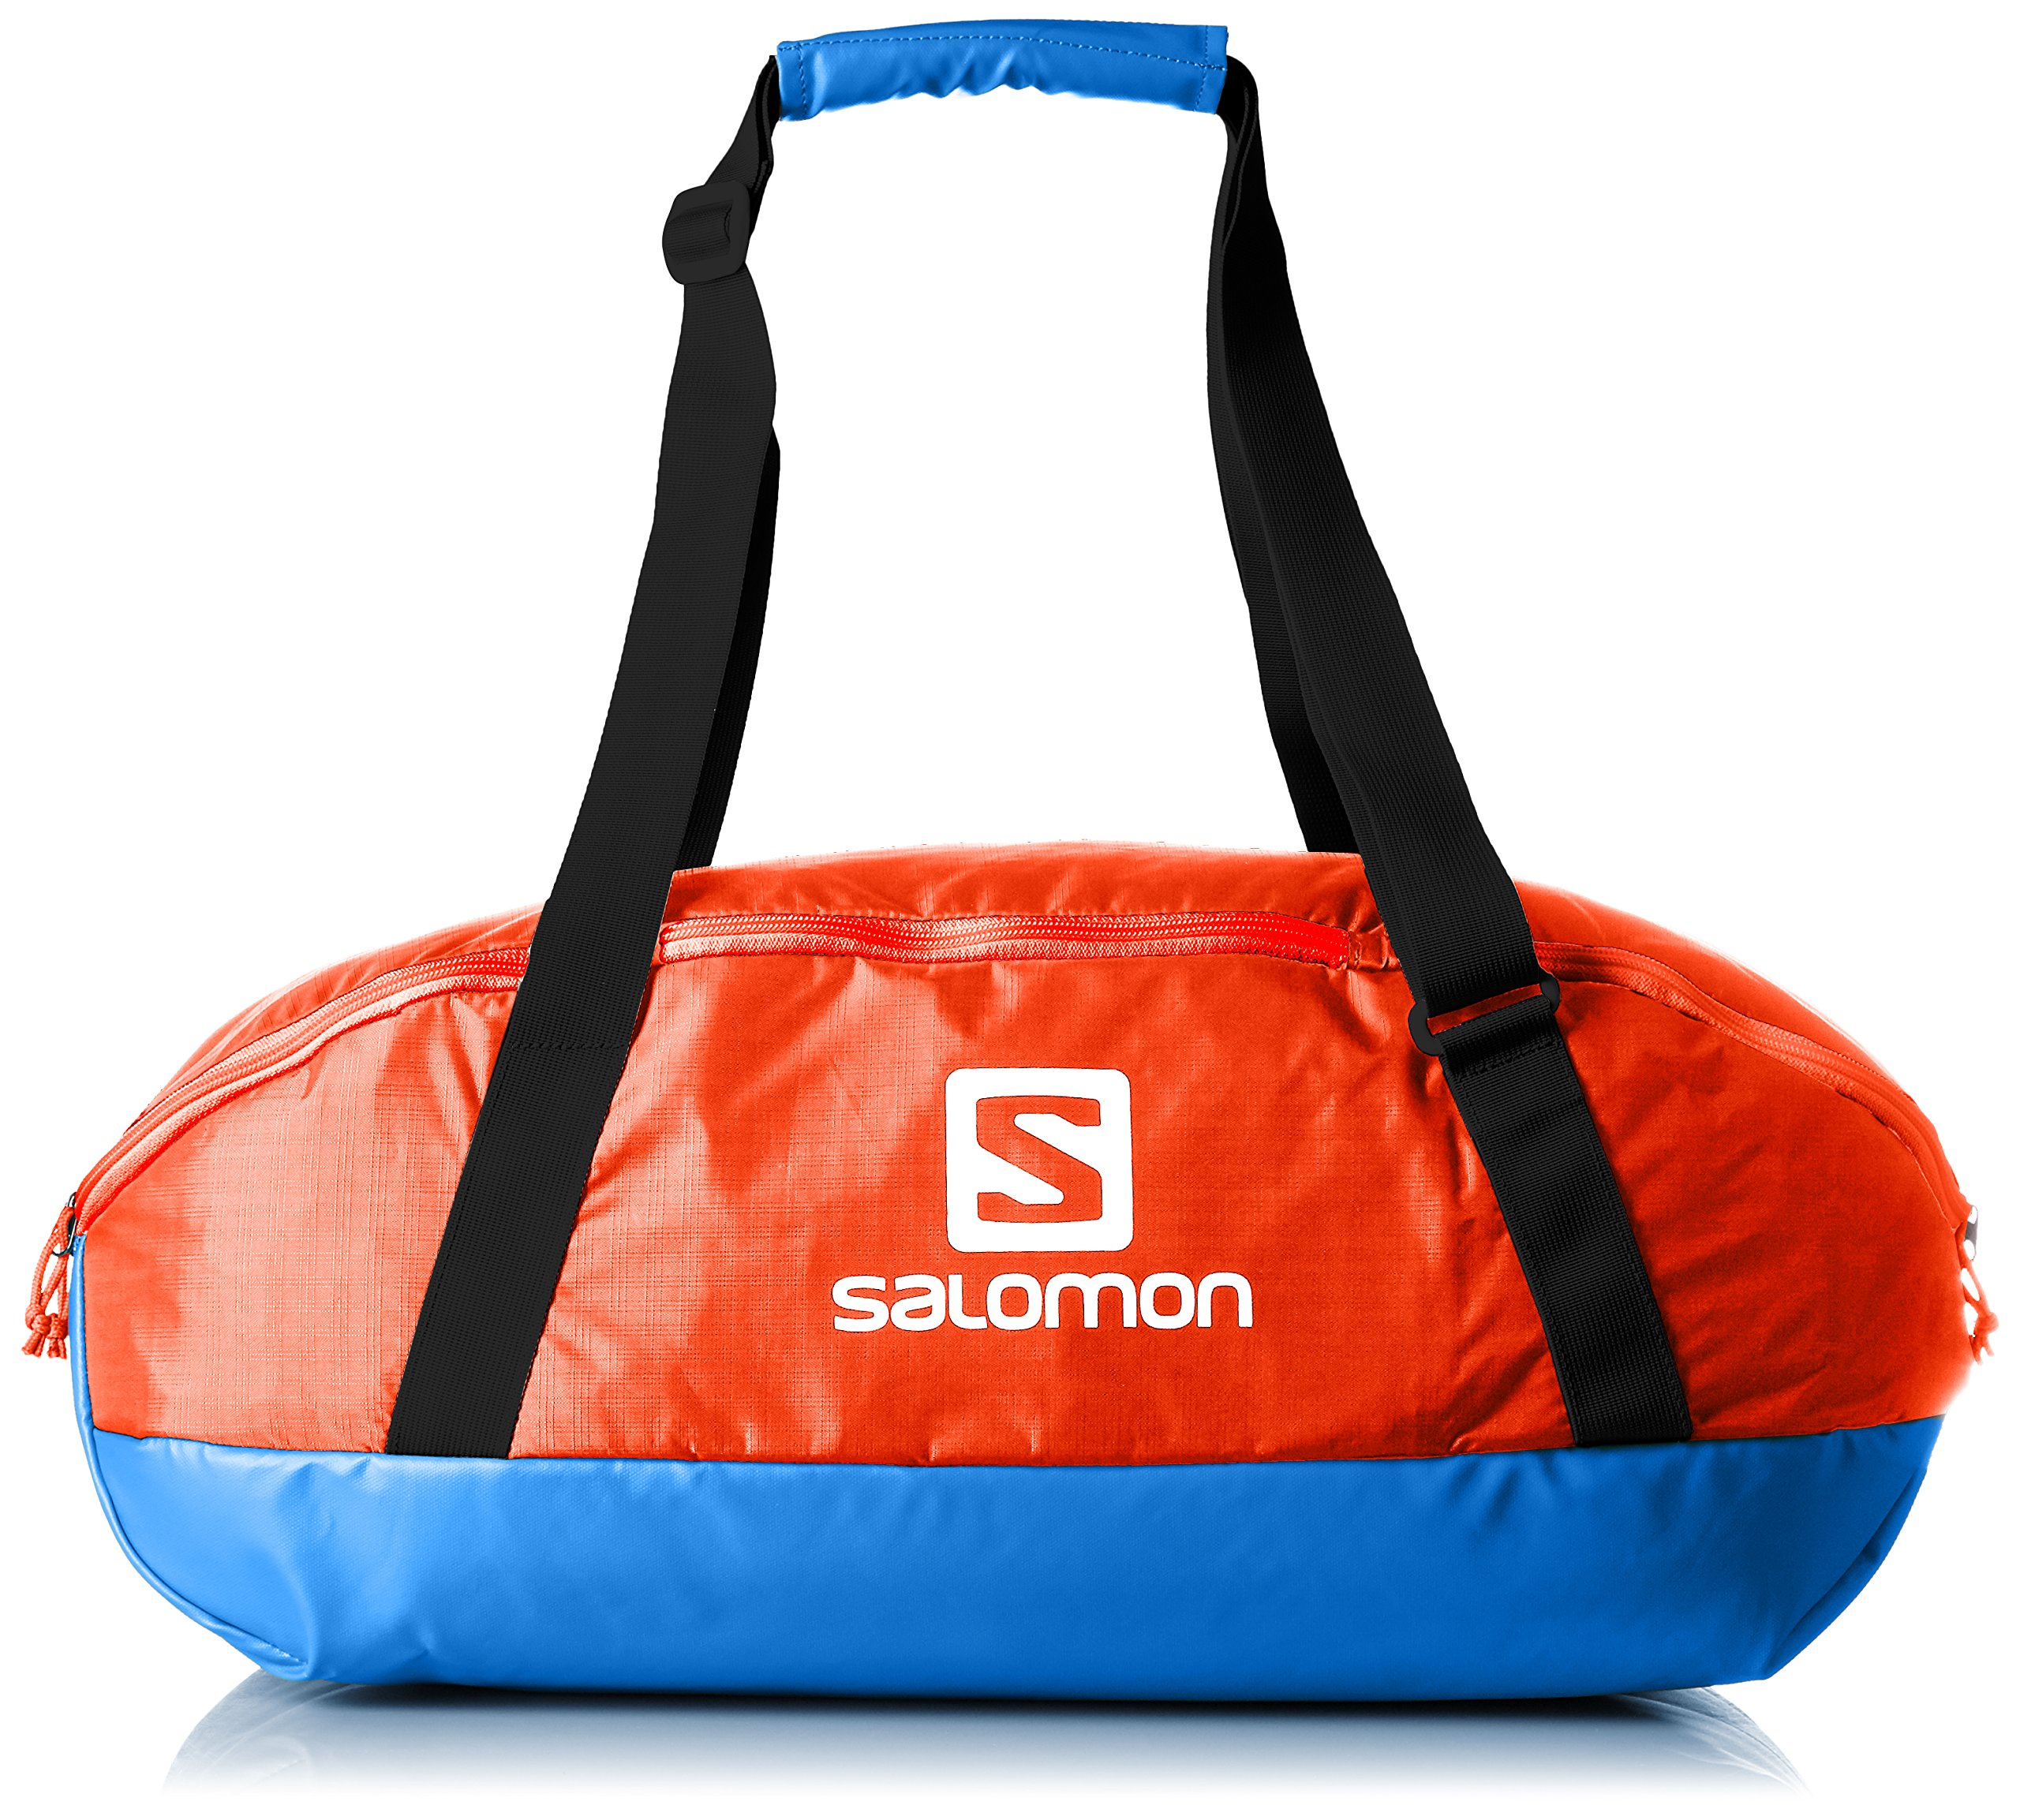 Details about Salomon Prolog 40 Durable Waterproof Sports Equipment Travel Gym Duffle Bag